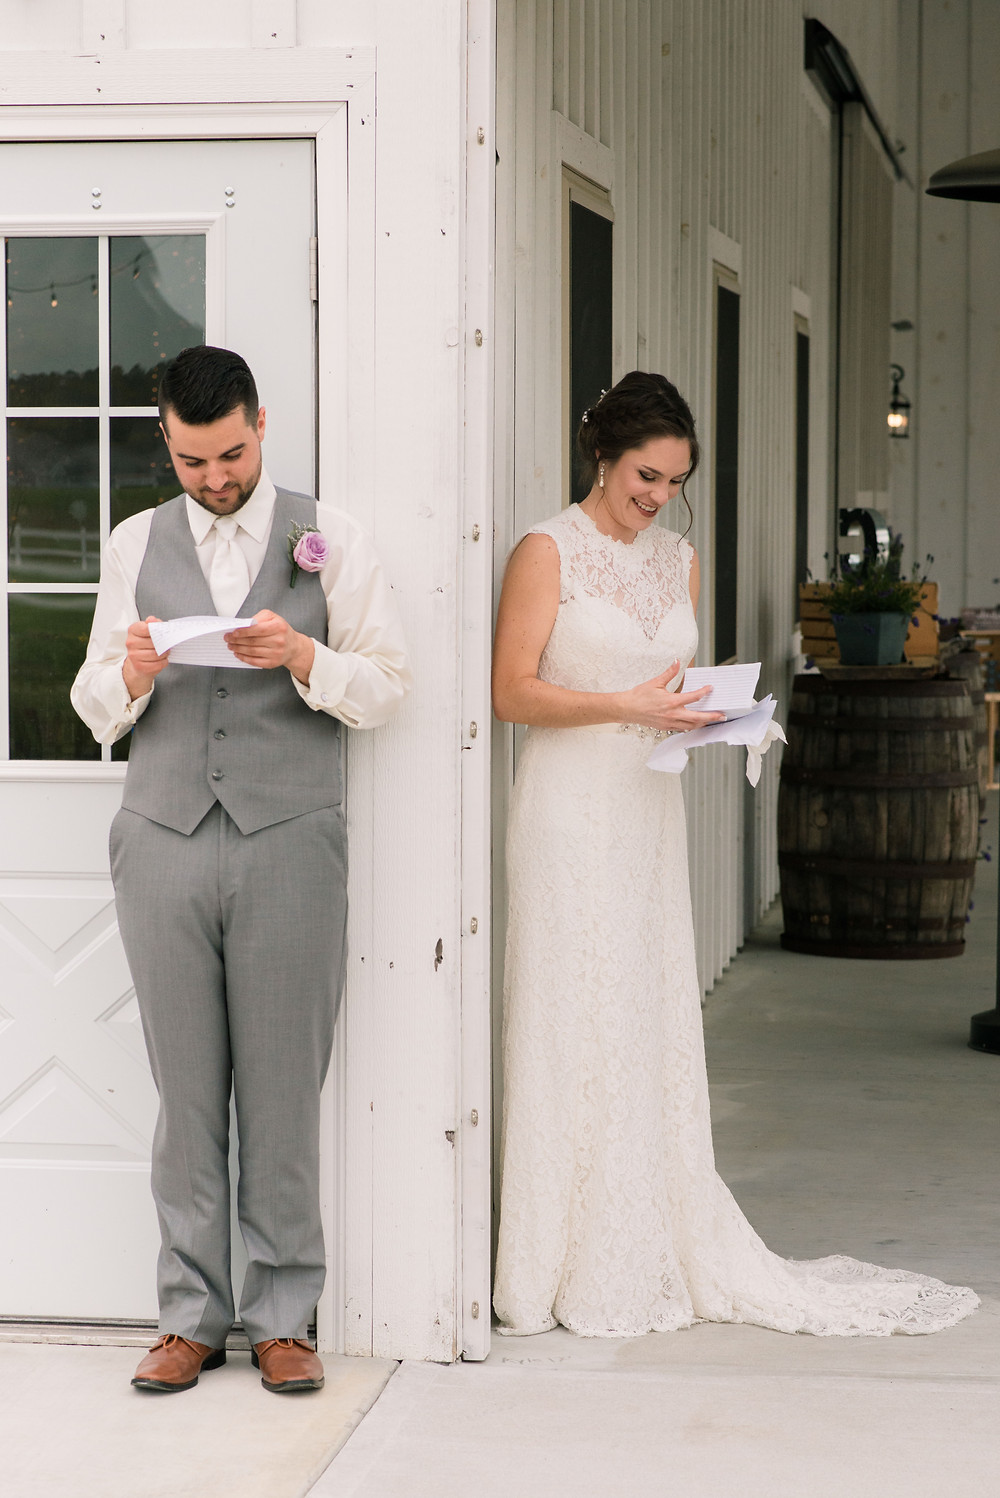 Write a letter to your future spouse on your wedding day for you to remember how special you are to each other. Eastern shore wedding venue designed by photographer.